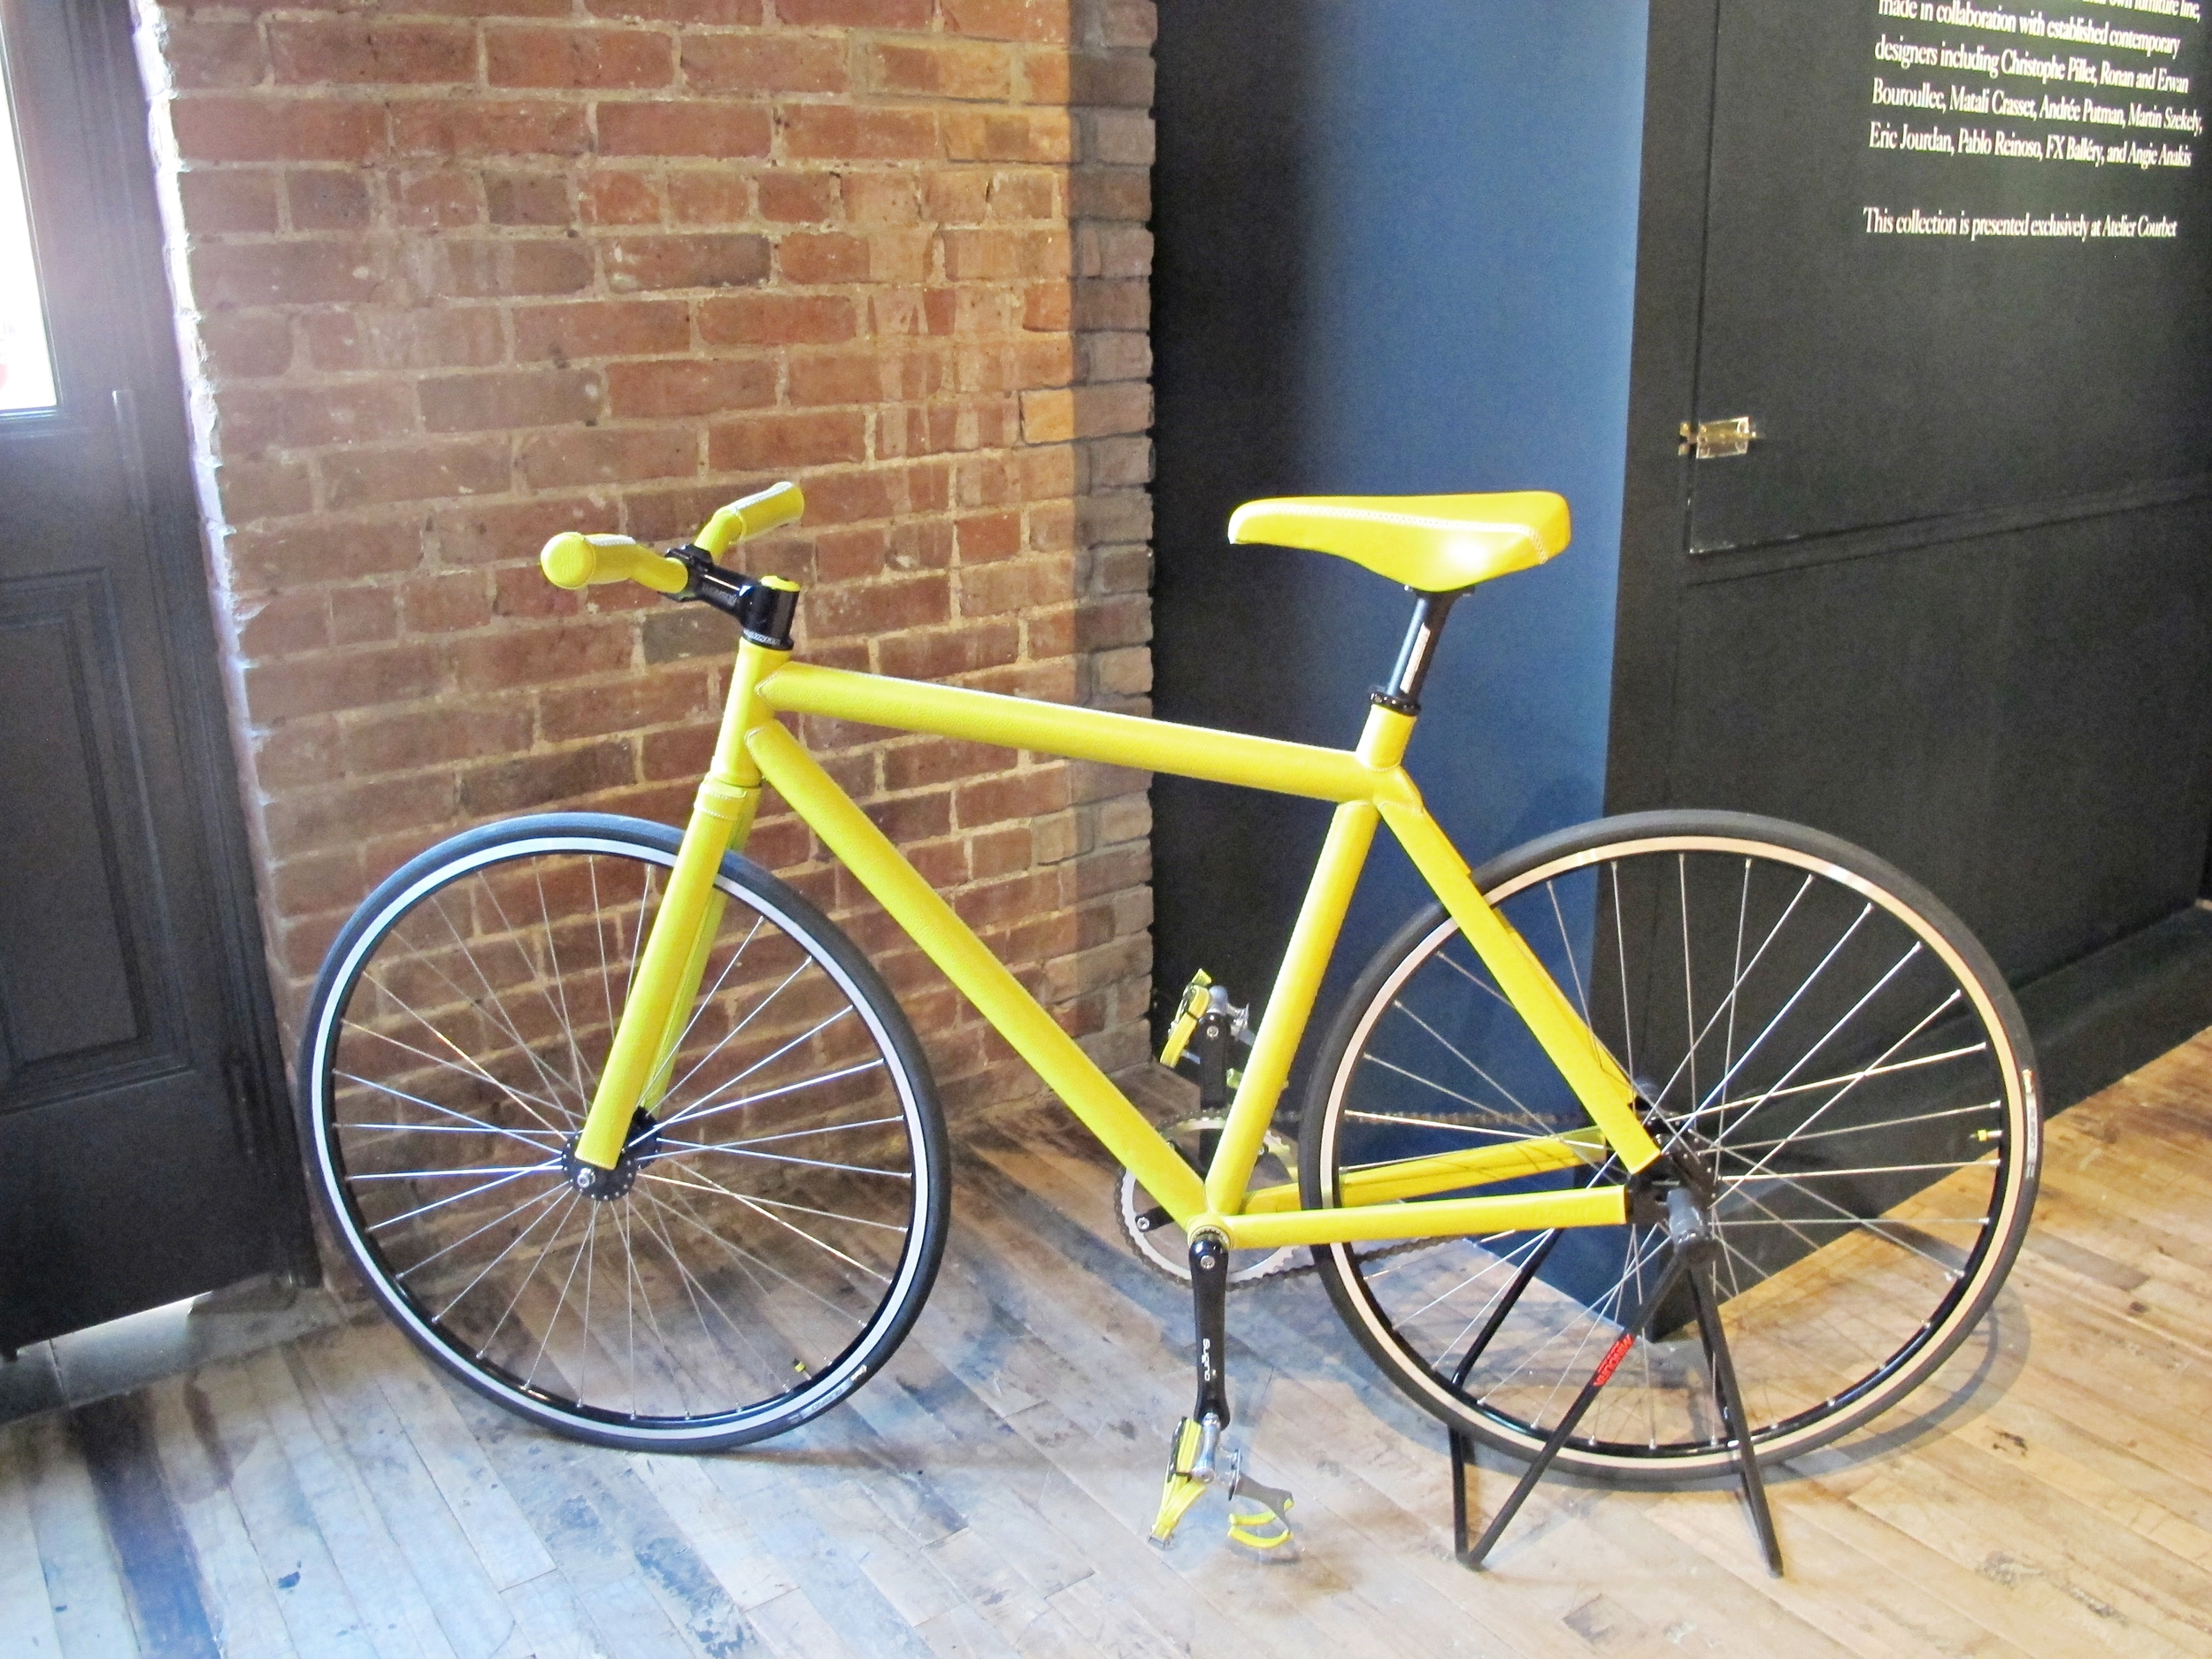 This is a limited edition bike upholstered in yellow leather. It was designed by Pharrell Williams forDomeau & Pérès.